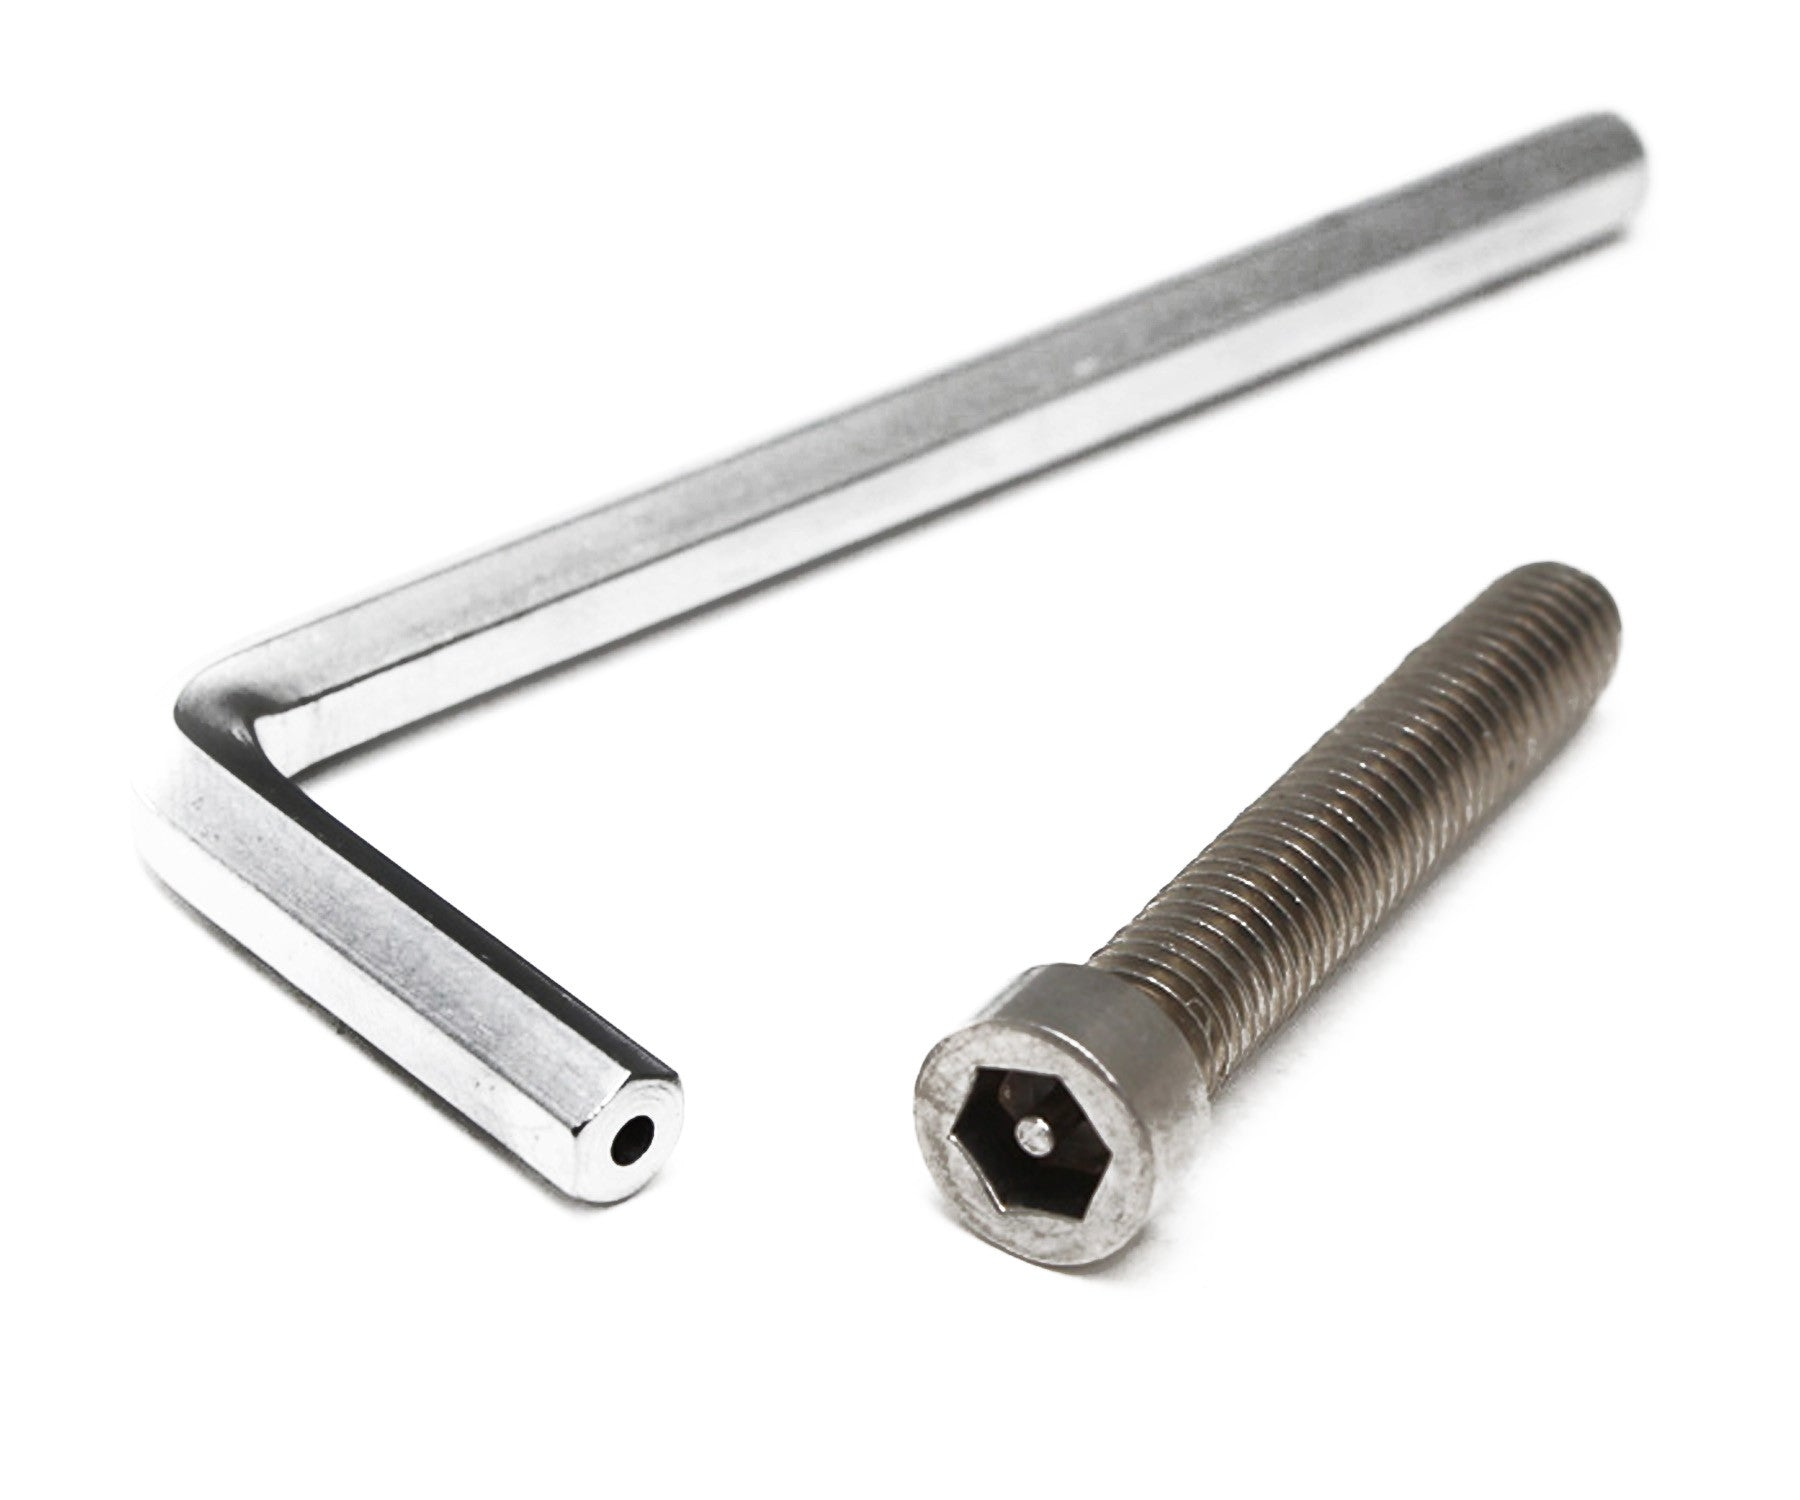 stainless steel security bolts - Retrogression